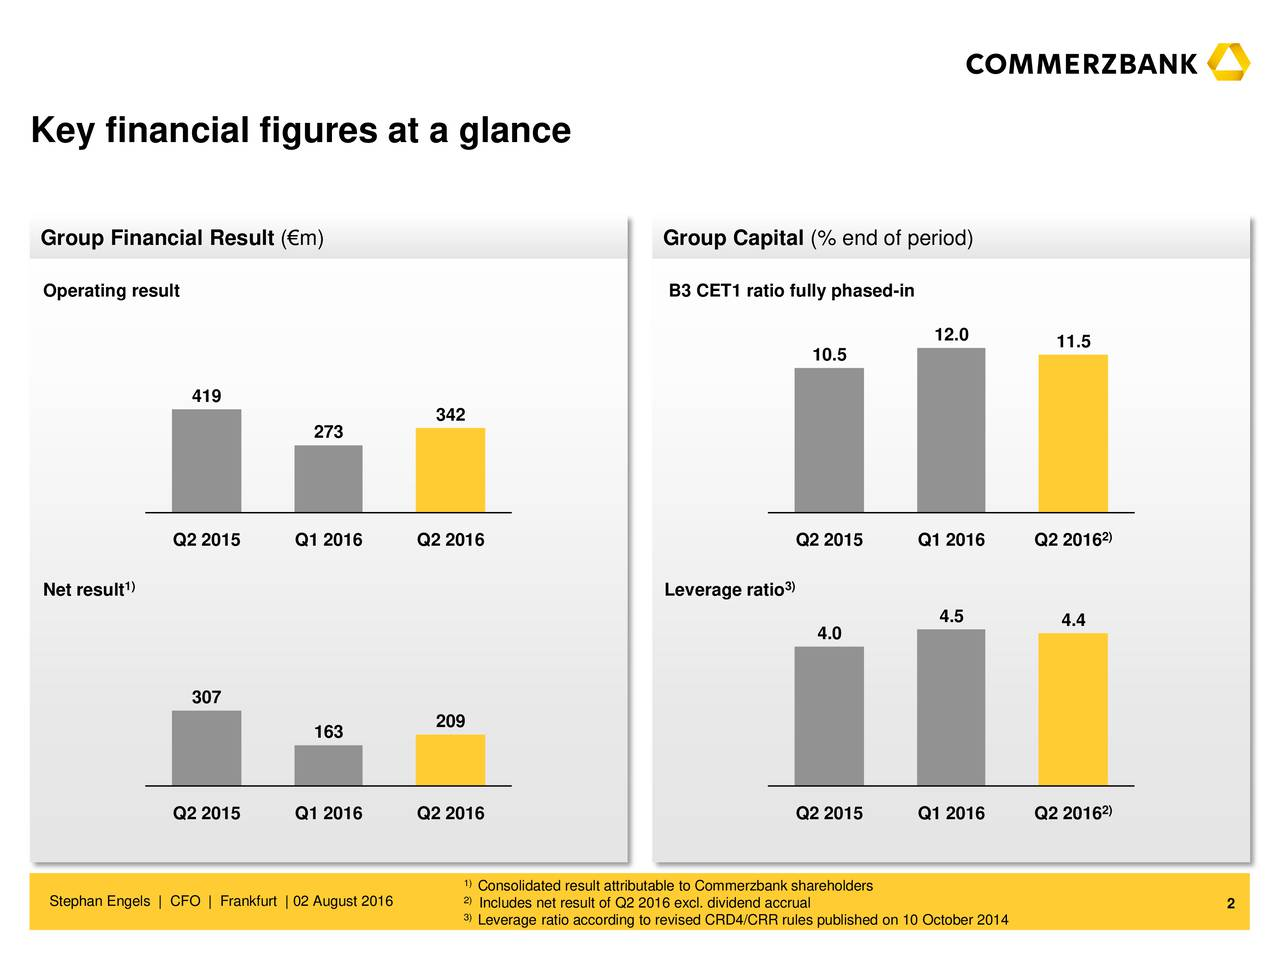 Group Financial Result (m) Group Capital (% end of period) Operating result B3 CET1 ratio fully phased-in 12.0 11.5 10.5 419 342 273 2) Q2 2015 Q1 2016 Q2 2016 Q2 2015 Q1 2016 Q2 2016 1) Net result Leverage ratio 3) 4.5 4.4 4.0 307 209 163 Q2 2015 Q1 2016 Q2 2016 Q2 2015 Q1 2016 Q2 2016 2) 1) 2)onsolidated result attributable to Commerzbank shareholders Stephan Engels | CFO | Frankfurt | 02 August 2016 3)ncludes net result of Q2 2016 excl. dividend accrual 2 Leverage ratio according to revised CRD4/CRR rules published on 10 October 2014